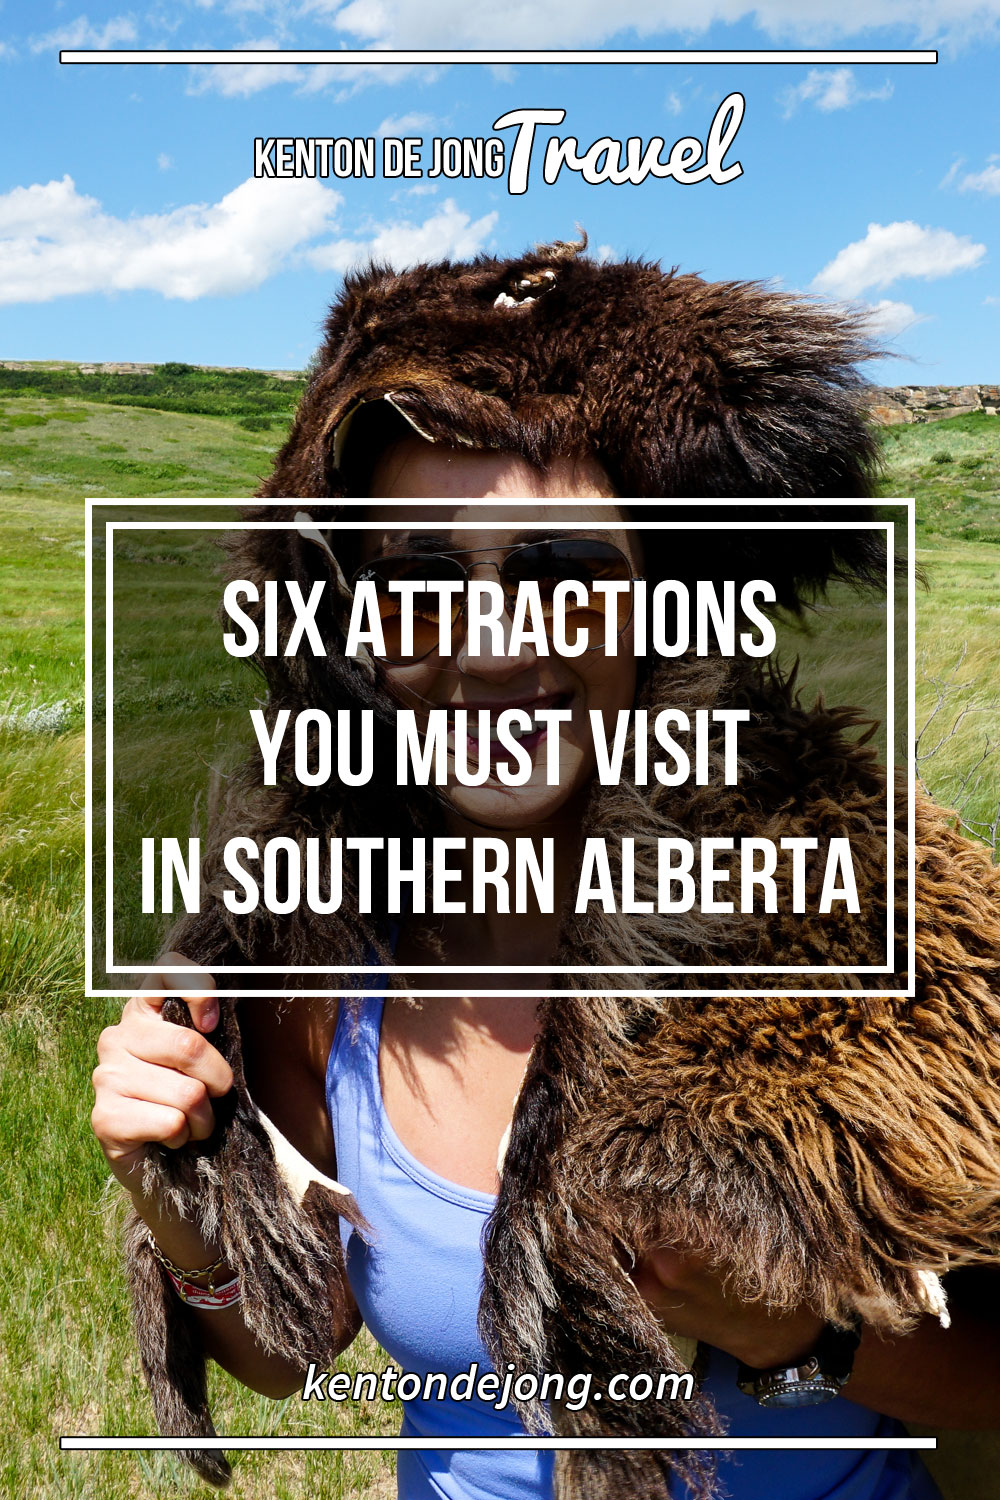 Six Attractions You Must Visit in Southern Alberta